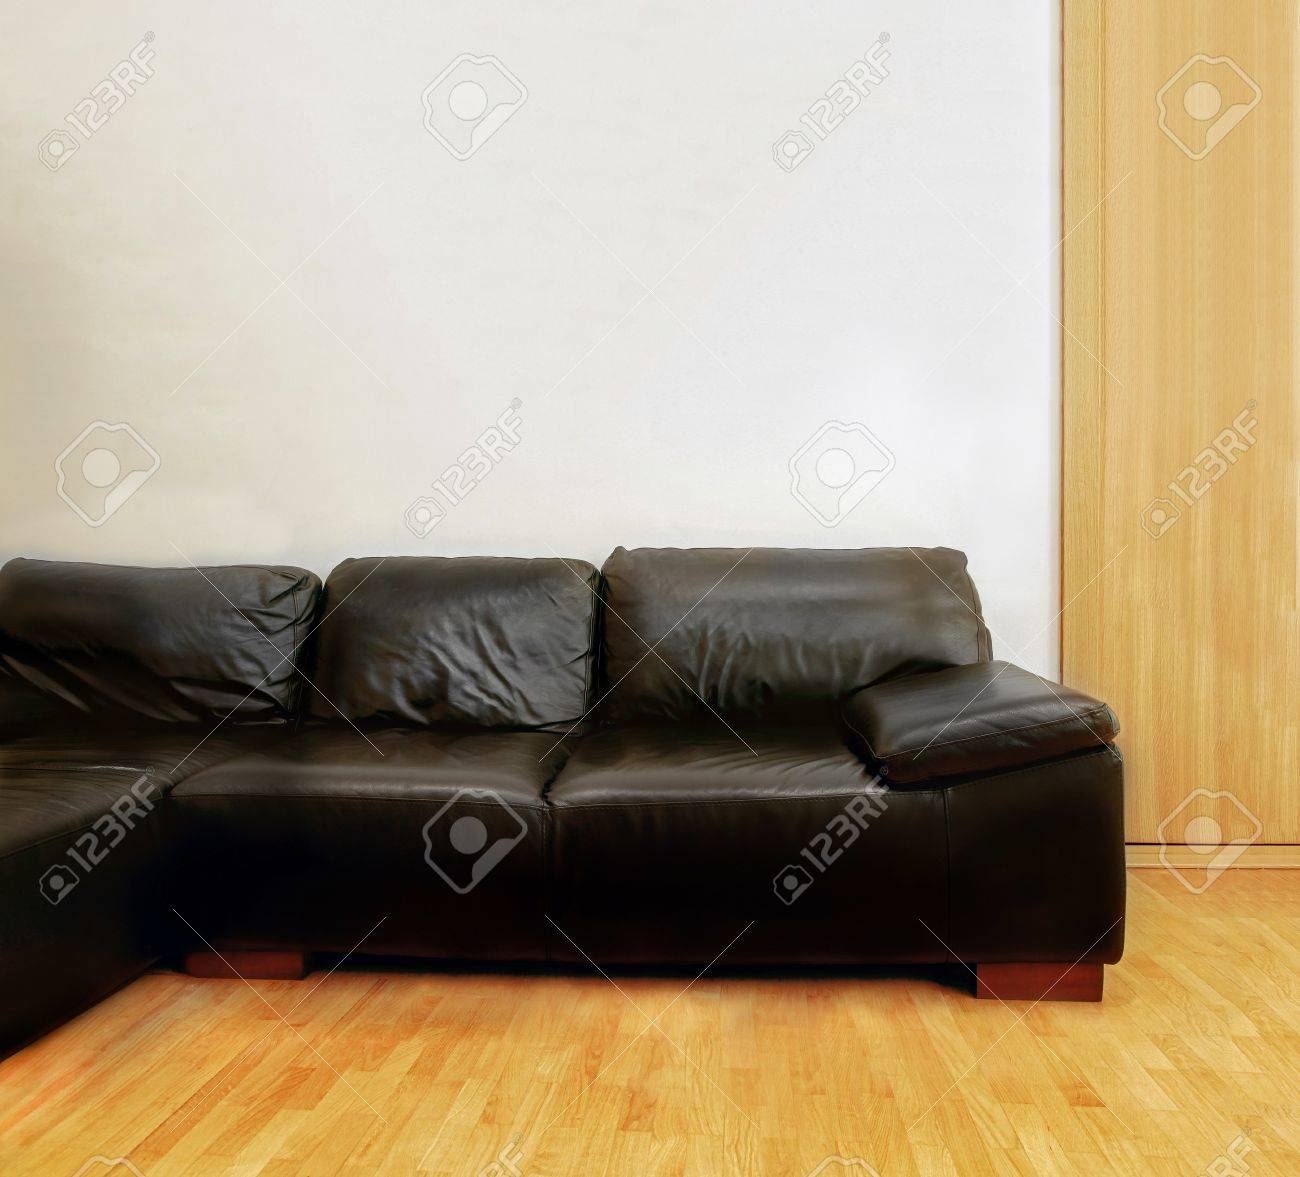 Black leather couch in modern interior with wooden floor and gray wall for copyspace Stock Photo - 17153535